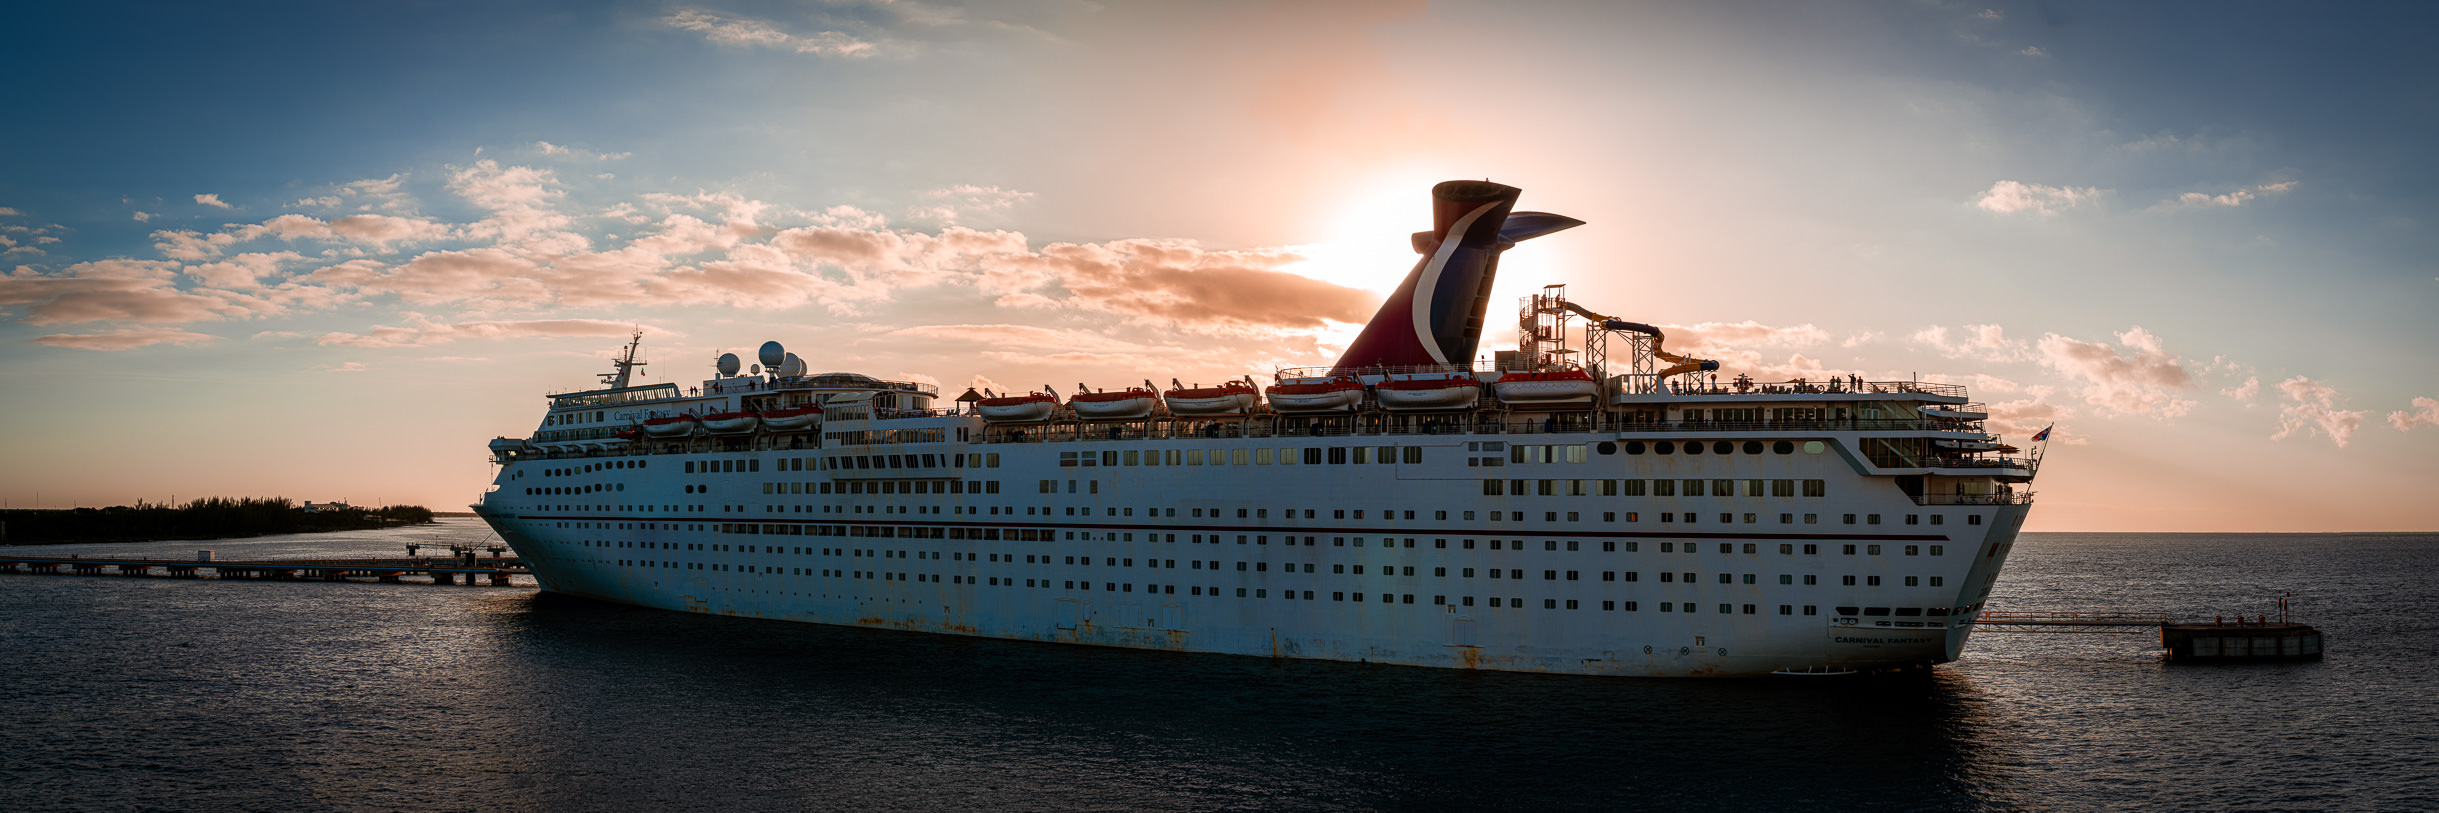 The sun sets behind the cruise ship Carnival Fantasy, docked at Cozumel, Mexico.